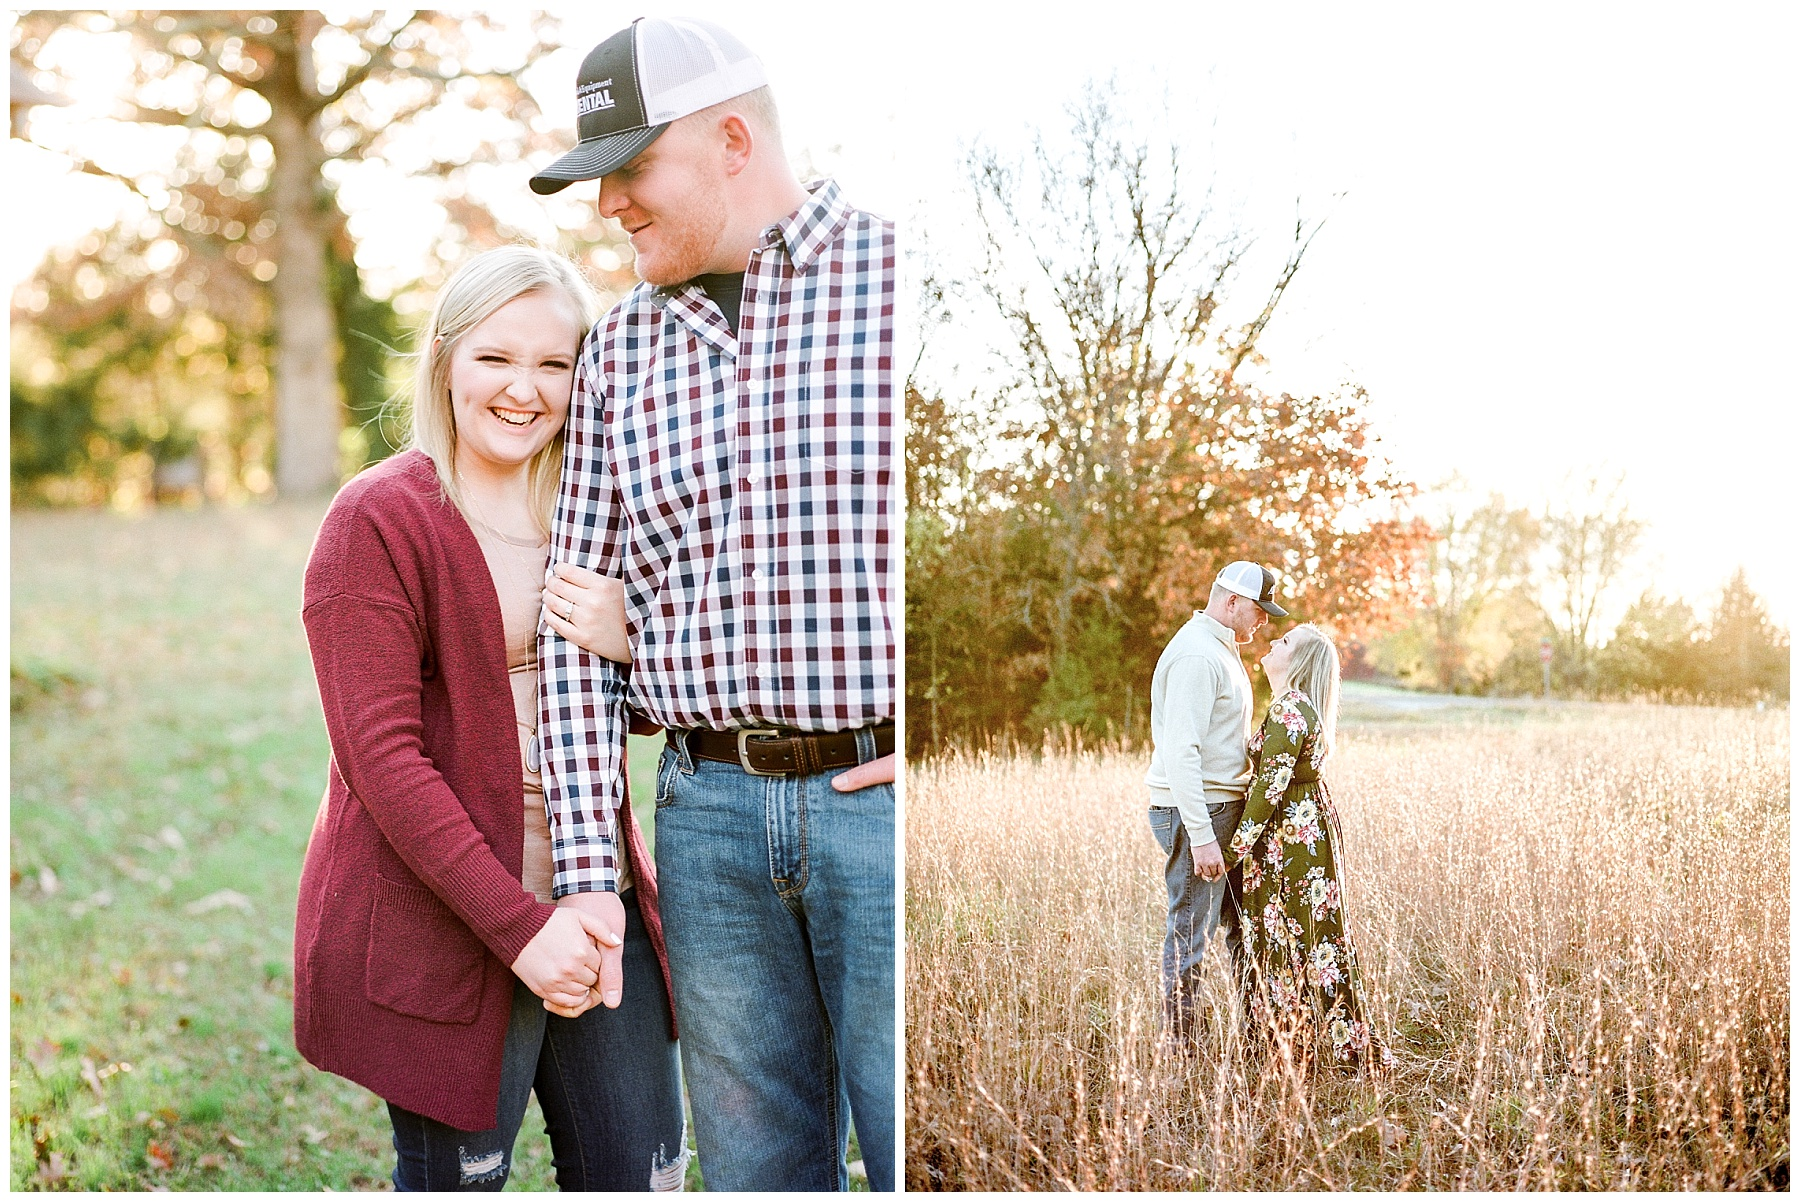 Perfect Sunset Engagement Session in Fall by Kelsi Kliethermes Photography Kansas City Missouri Wedding Photographer_0011.jpg